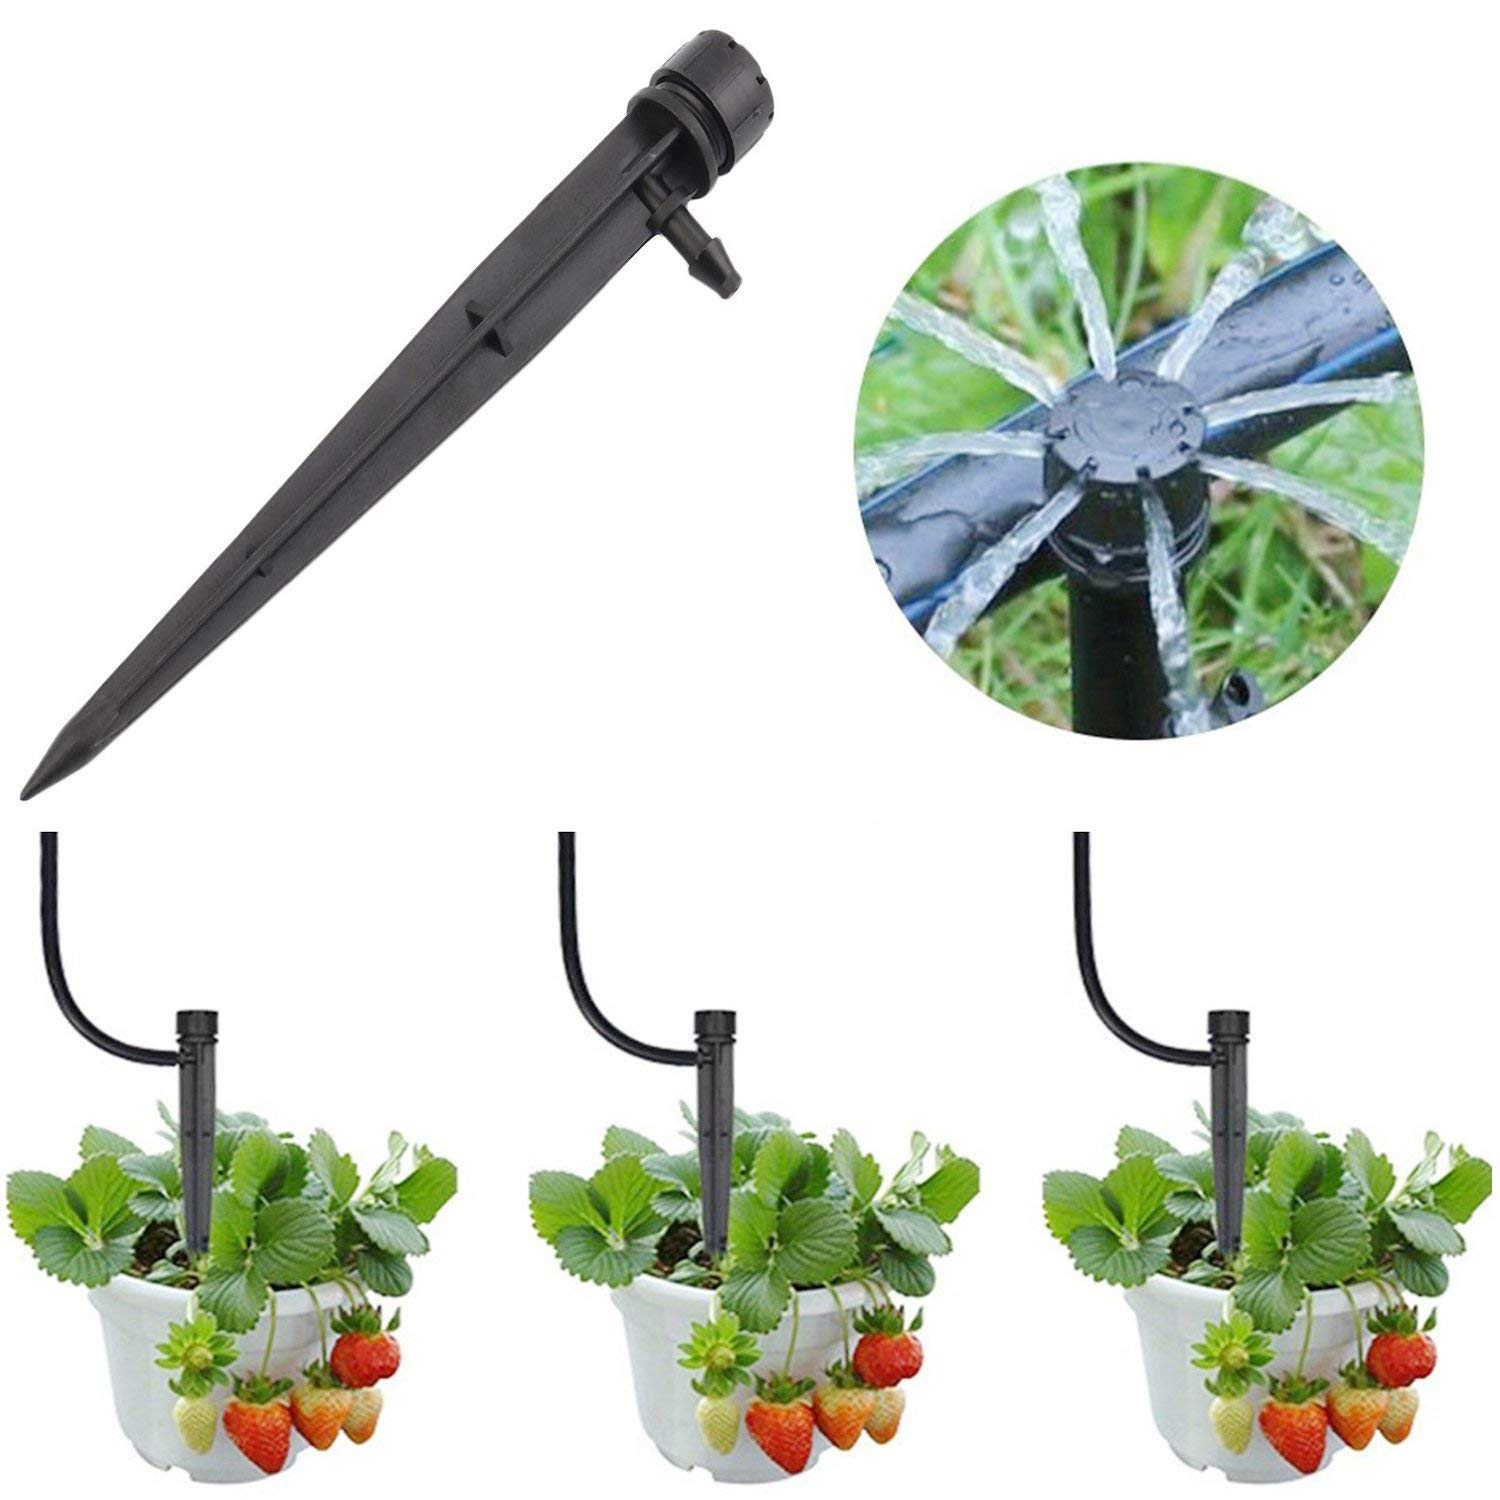 Herbs Gardens. Vegetable Gardens Adjustable 360 Degree Water Flow Drip Irrigation System for Flower beds Drip Emitters Perfect for 4//7mm Tube PE Pipe MANSHU 100pcs Adjustable Irrigation Drippers